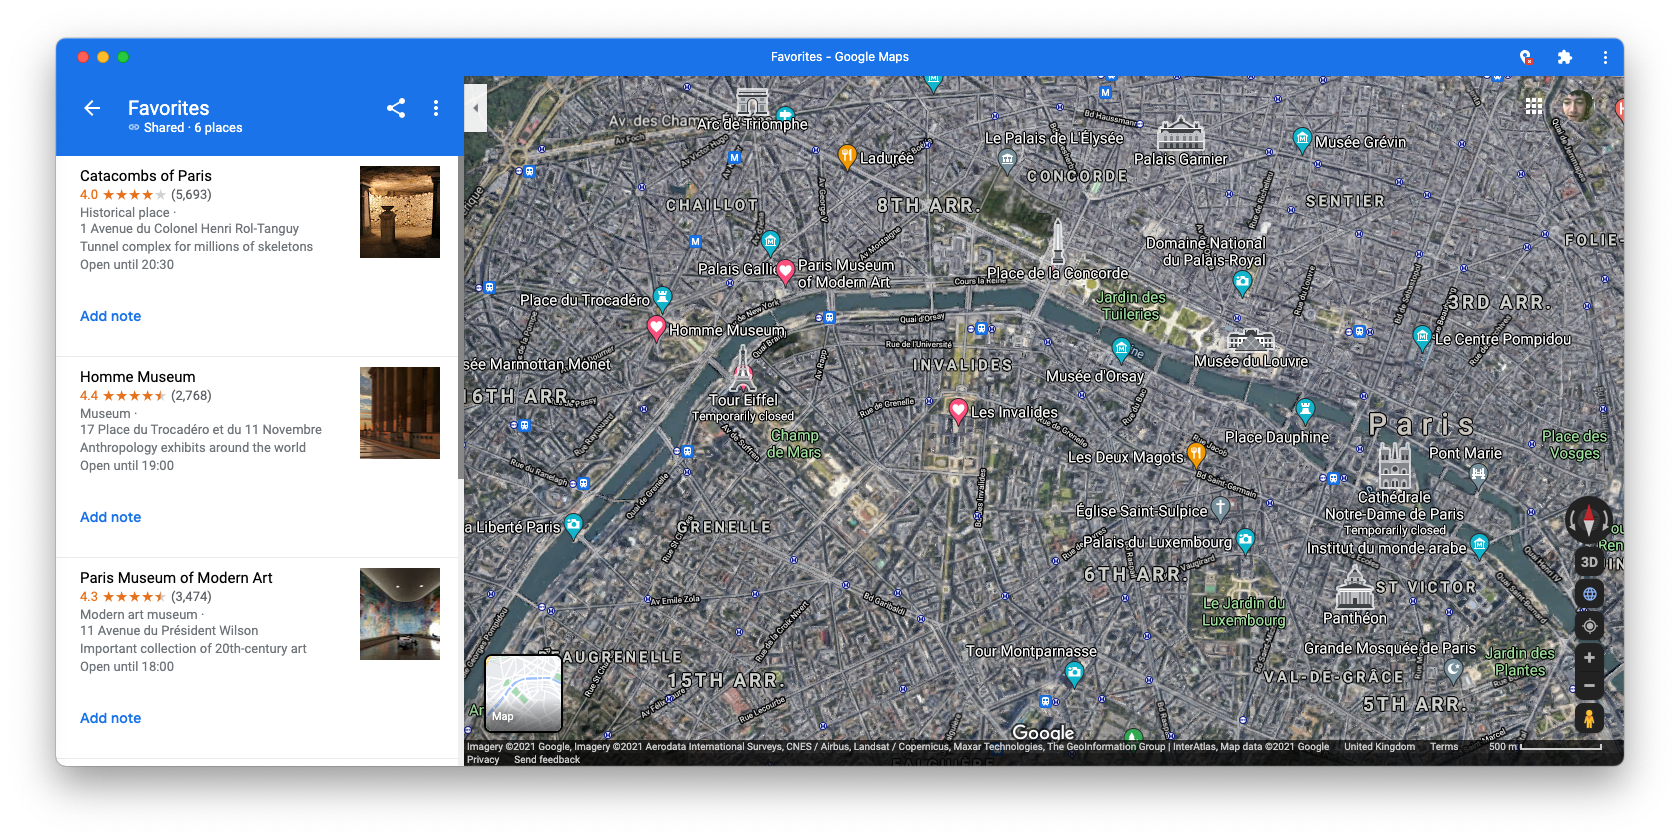 Here's How to Save Places in Google Maps